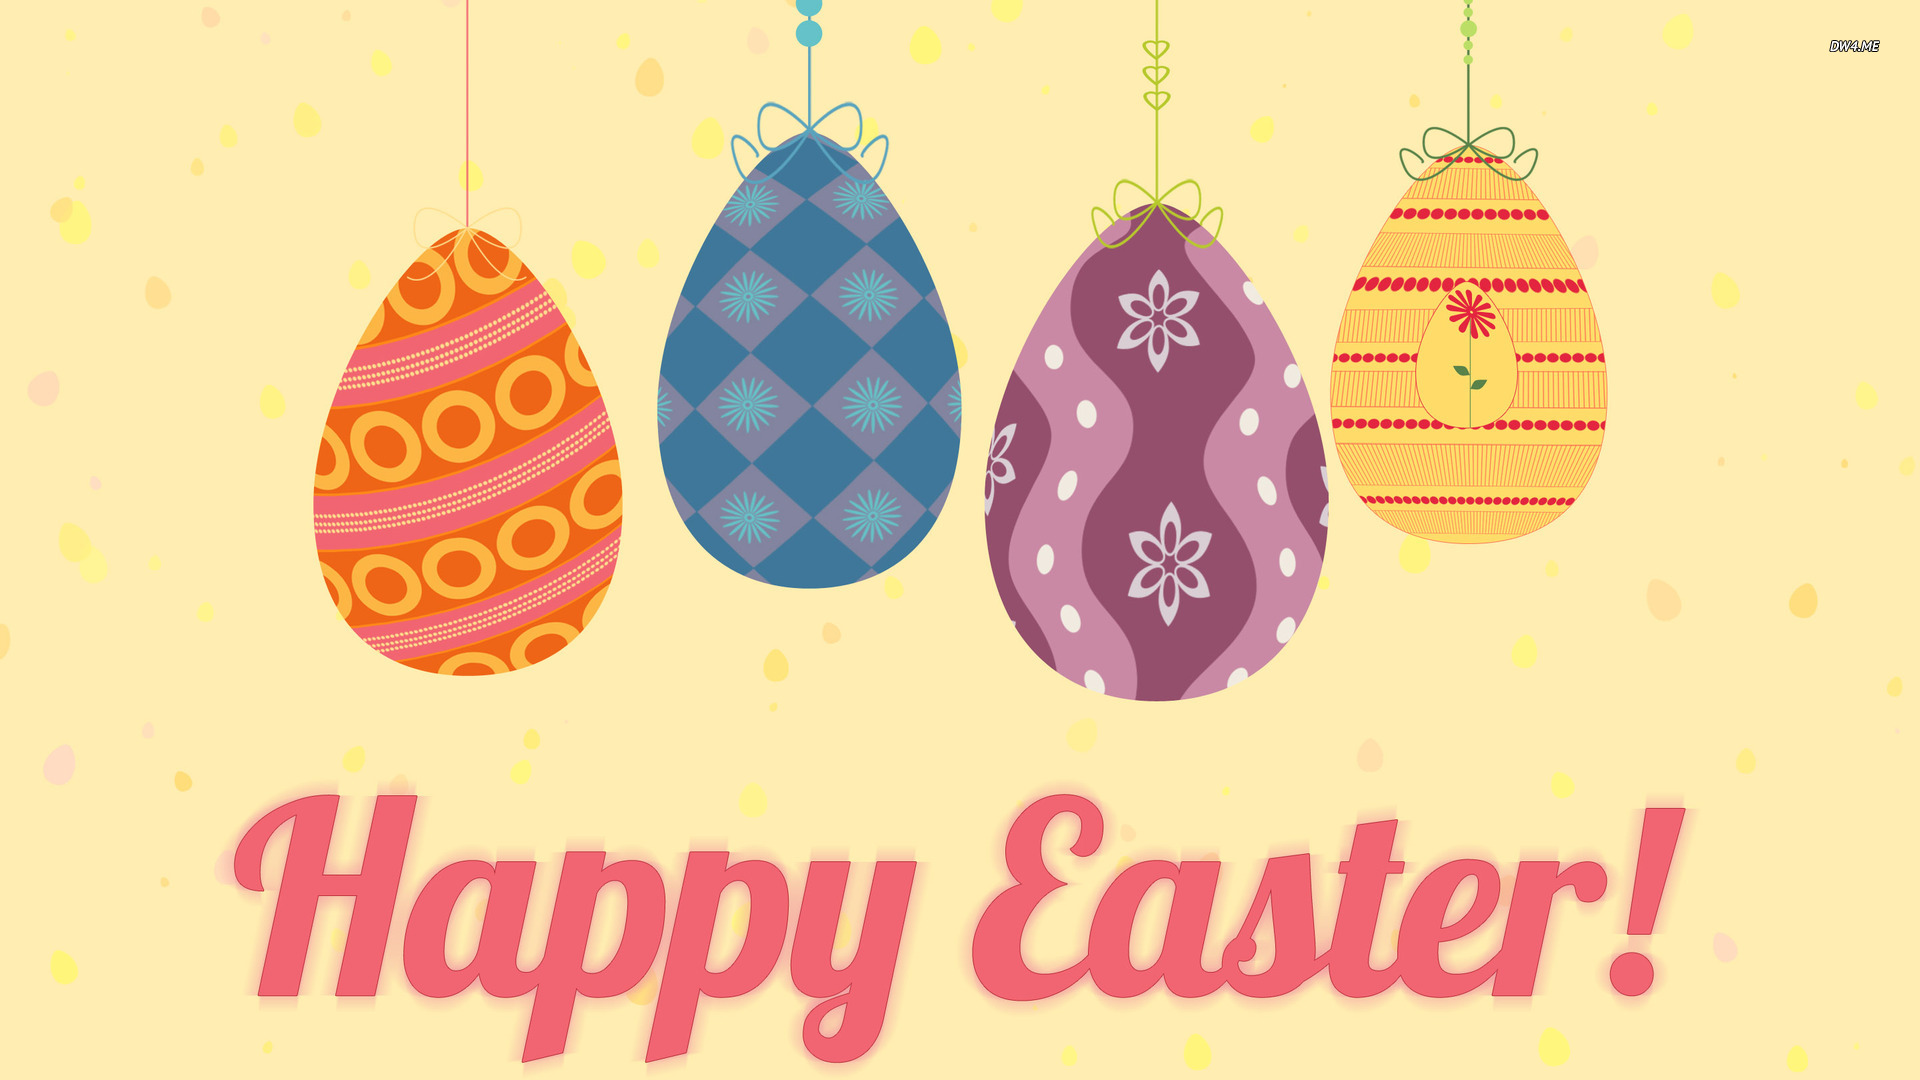 happy easter background images   Ecosia 1920x1080